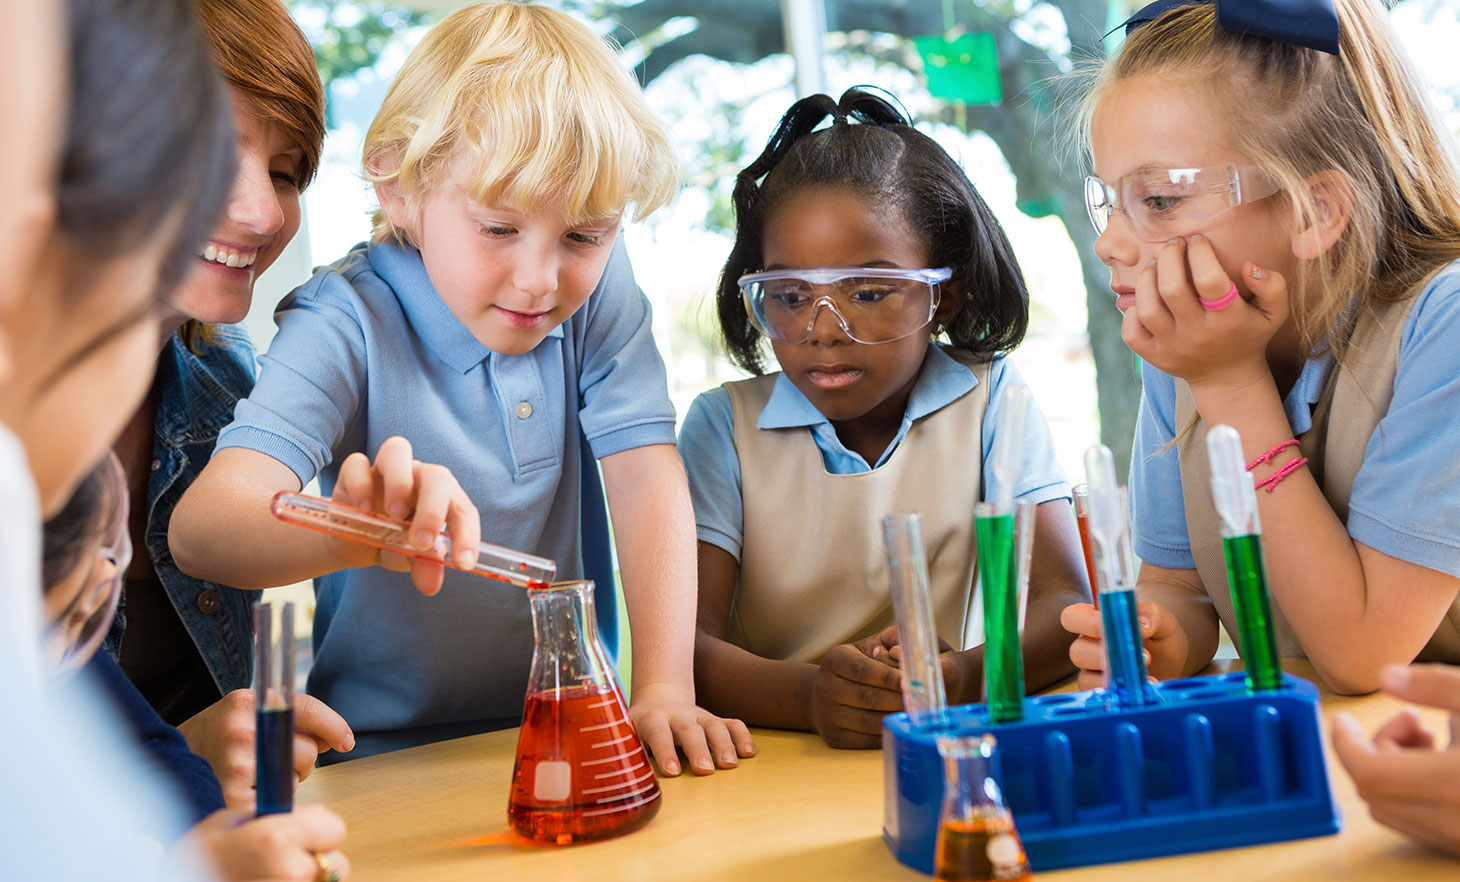 Kids using chemistry set in classroom